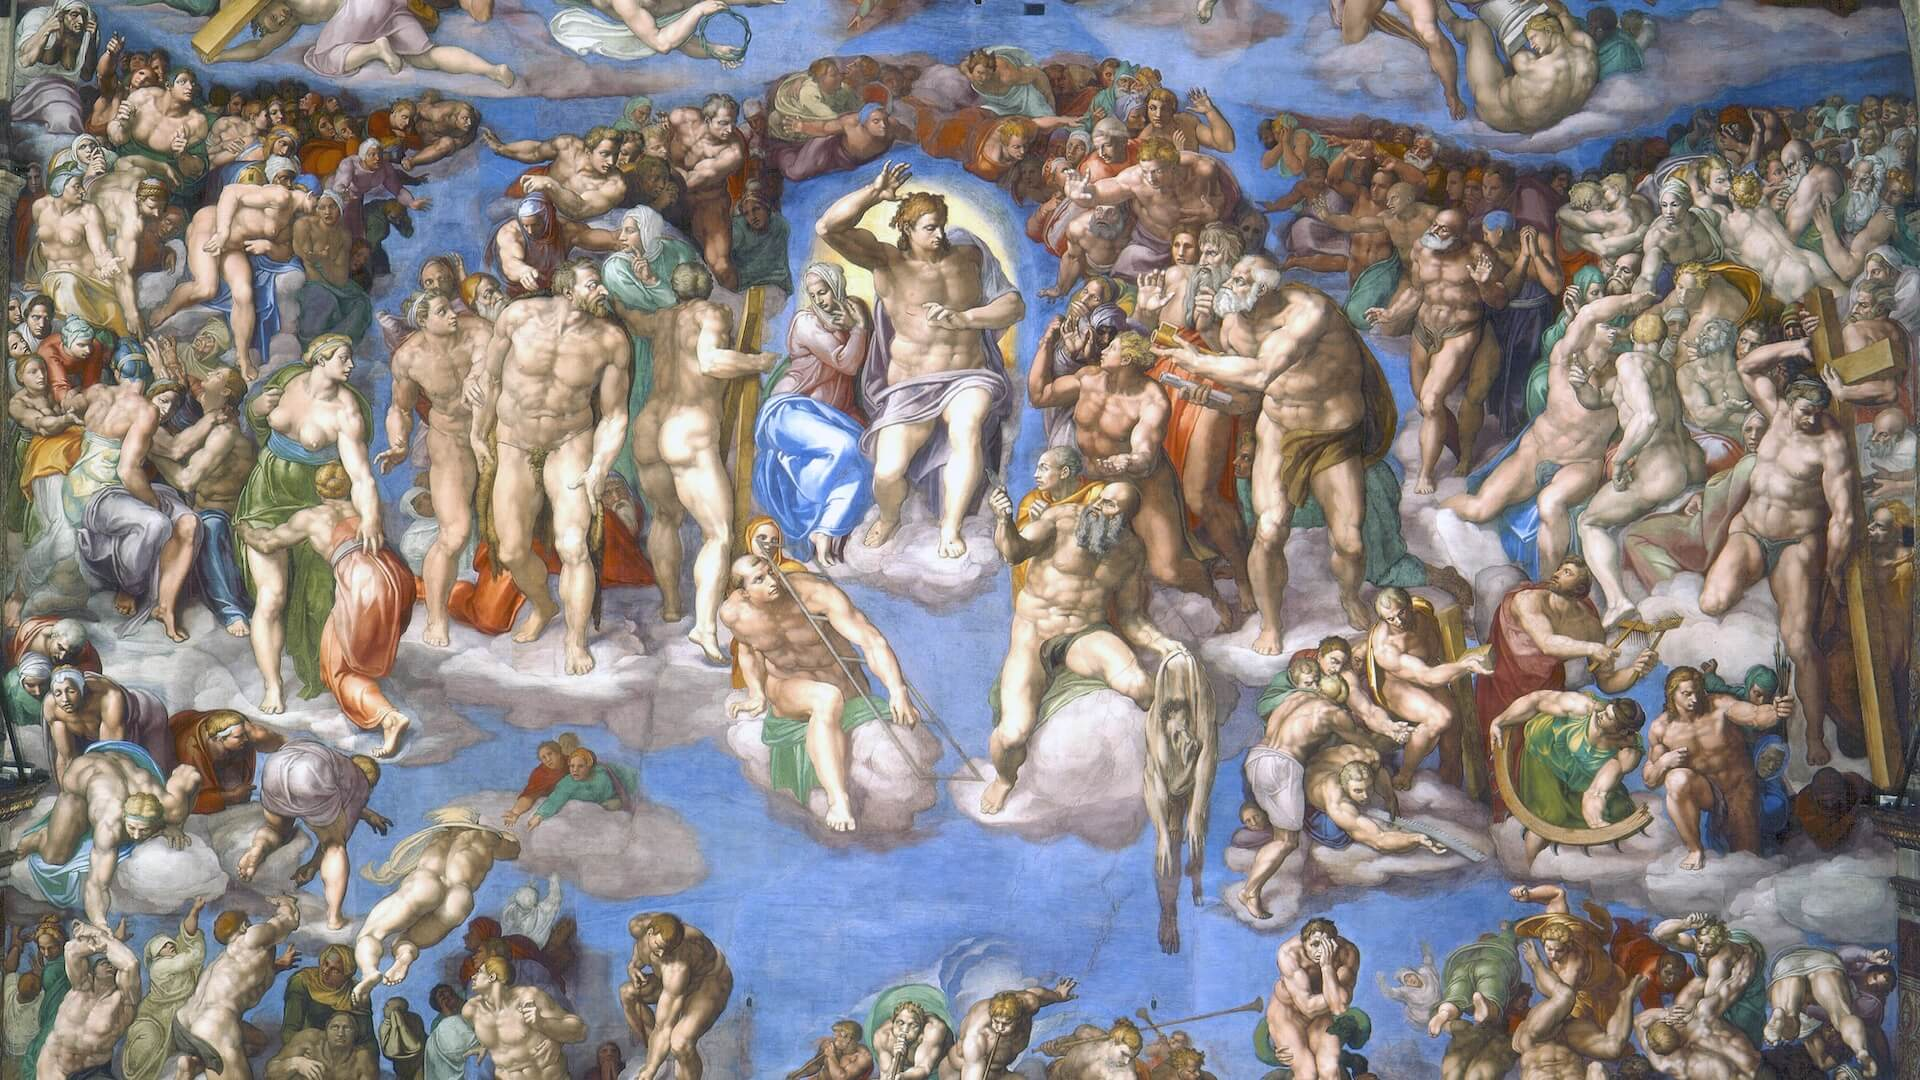 Michelangelo Juicio Final Capilla Sixtina